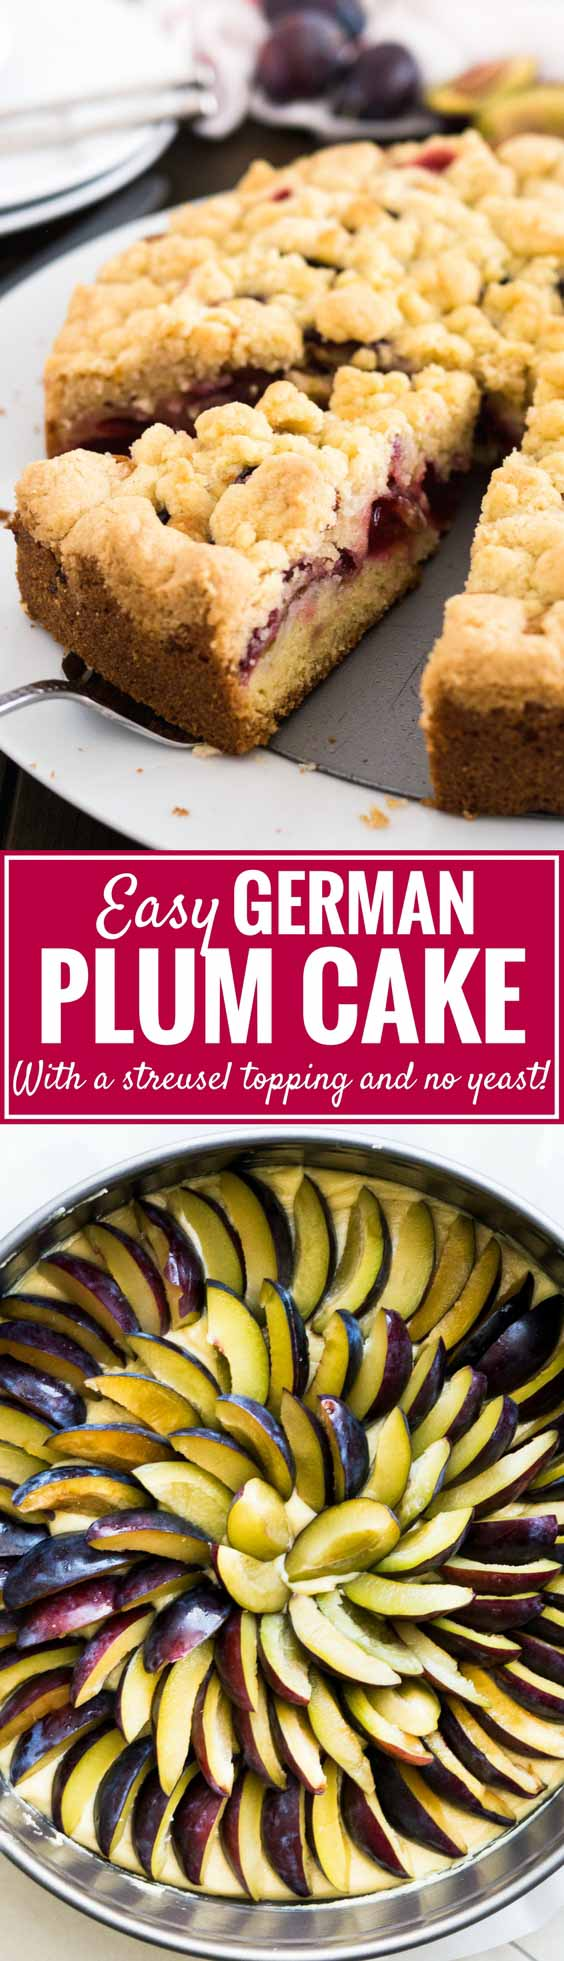 Plum Cake is a delicious coffee cake made with a simple batter, freshplums, and a cookie-like nut-free streusel topping! This traditional German plum crumb cake is so easy to make from scratch and can also be baked on a sheet if you need to feed a crowd. #plumcake #germanplumcake #plumcrumbcake #coffeecake #baking #cake